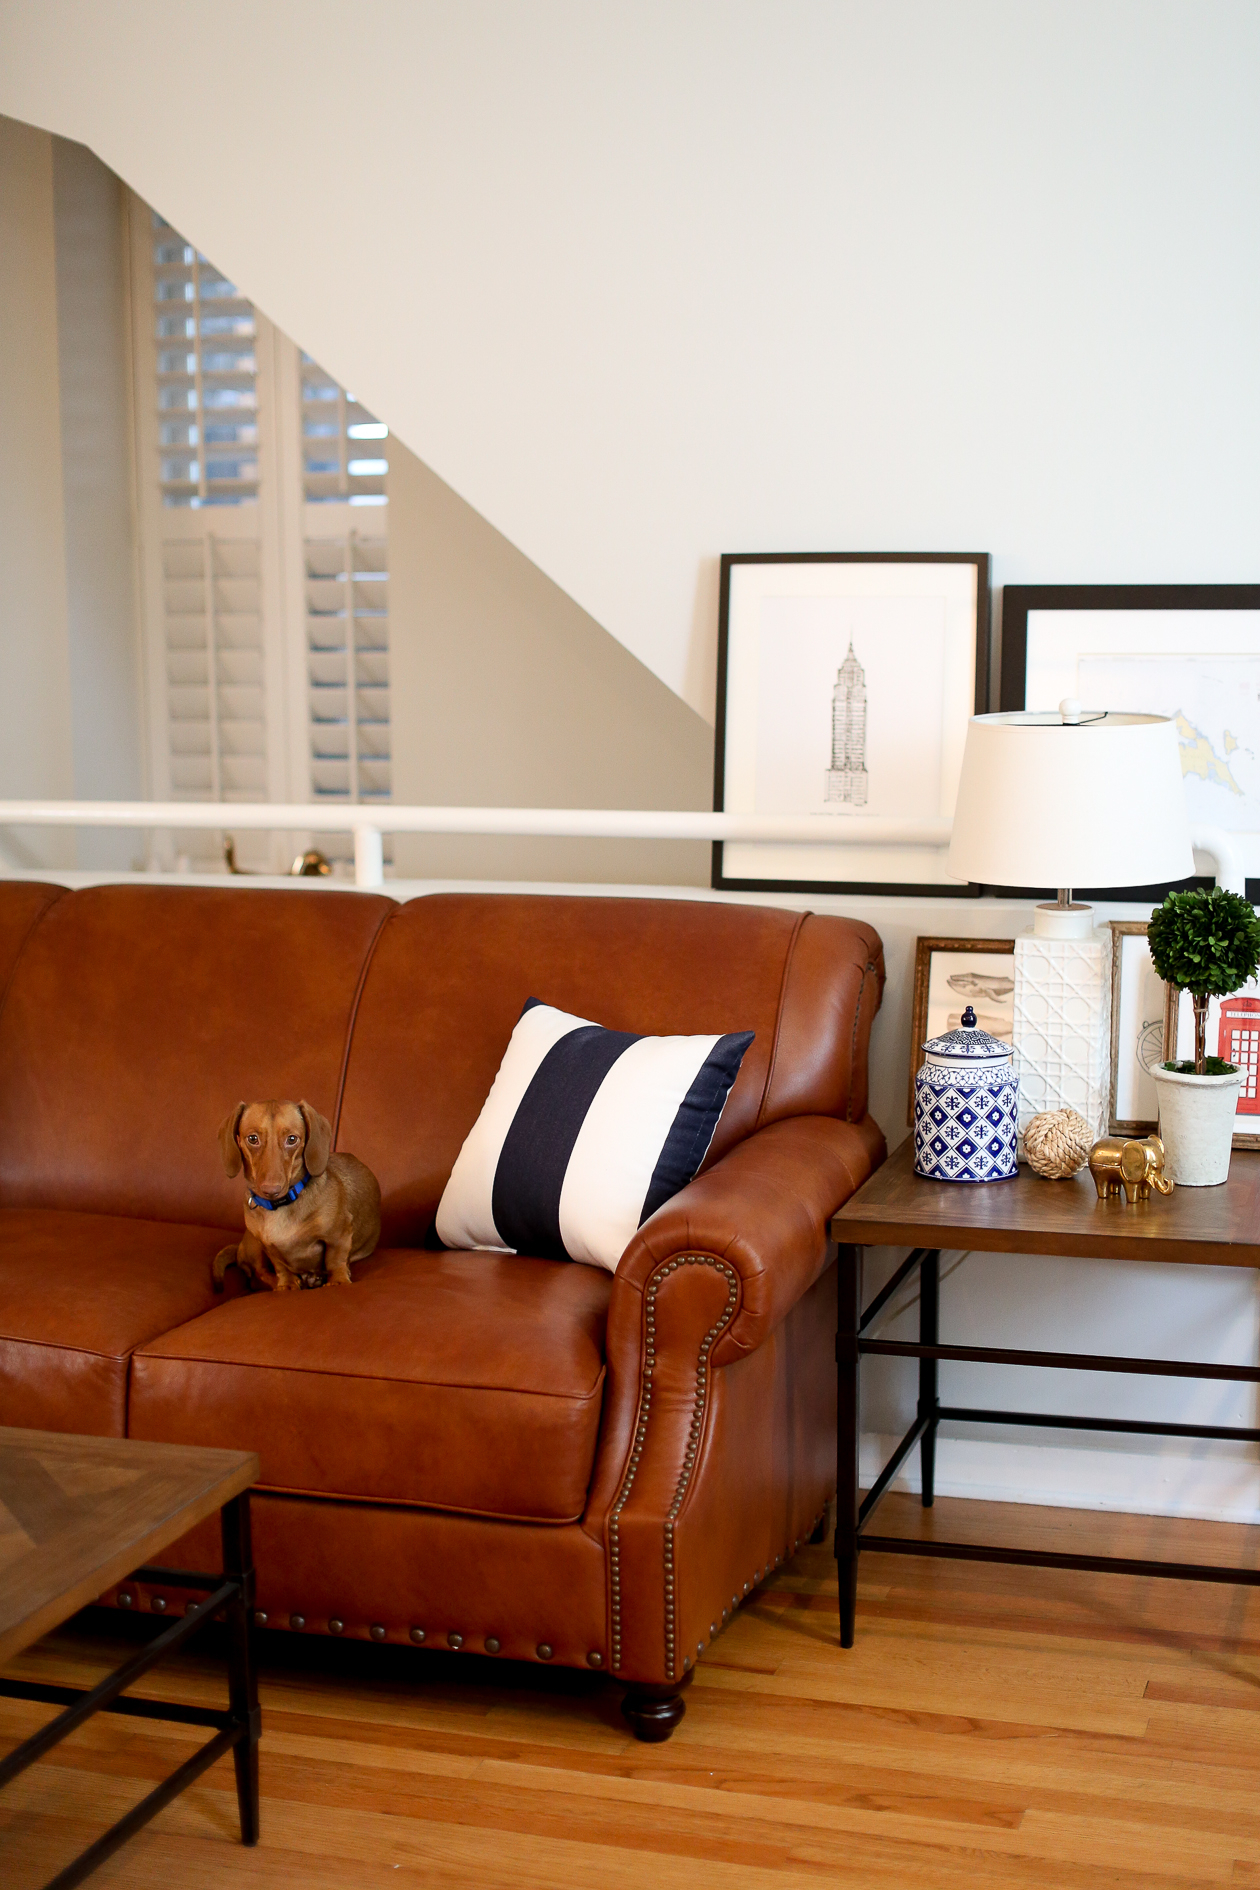 New Couches! – Kelly In The City Intended For Landry Sofa Chairs (Image 17 of 20)